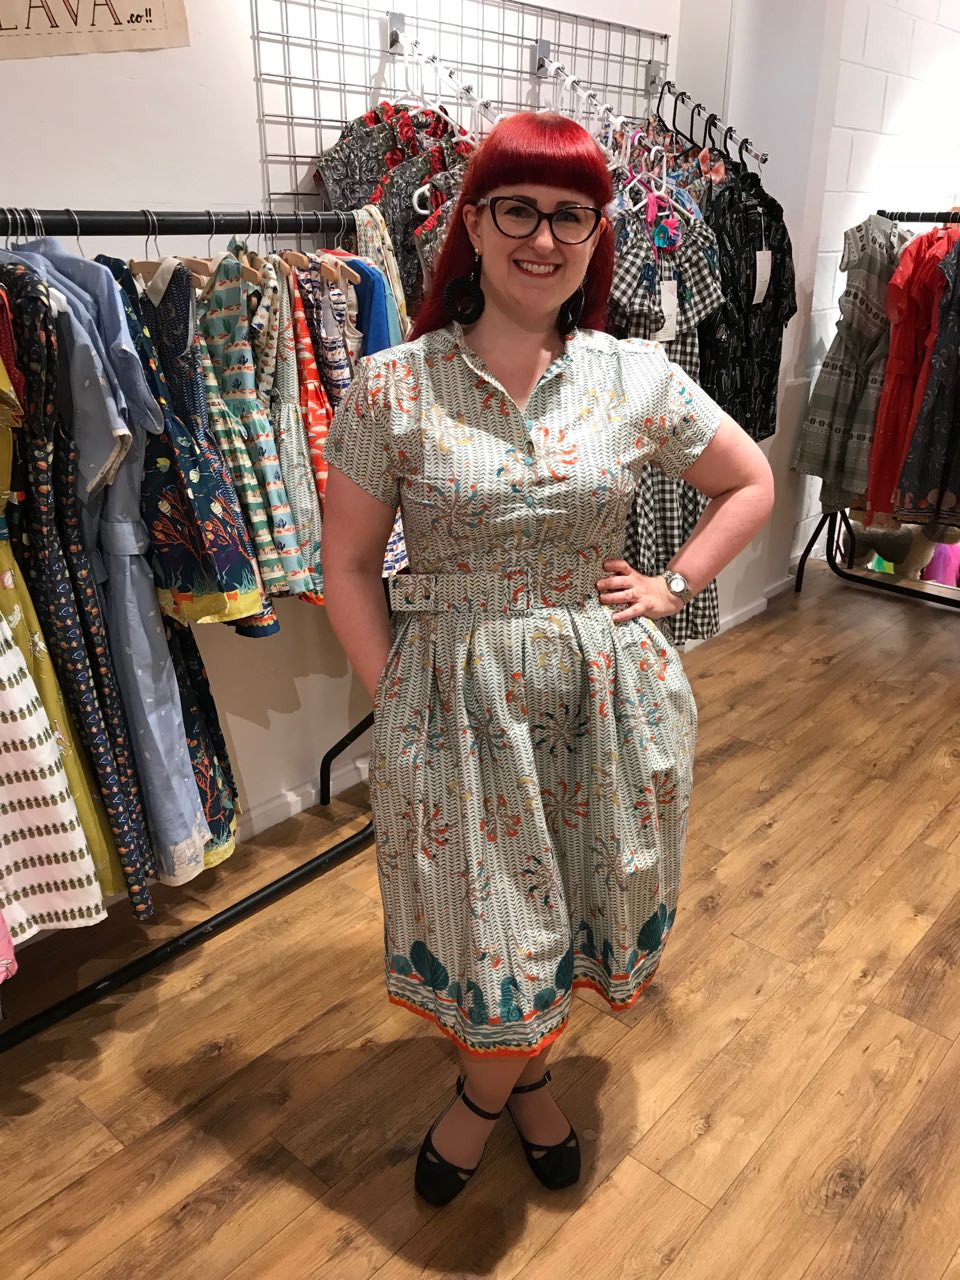 Lori wearing the 'Louise' dress by Palava in the light blue lido print